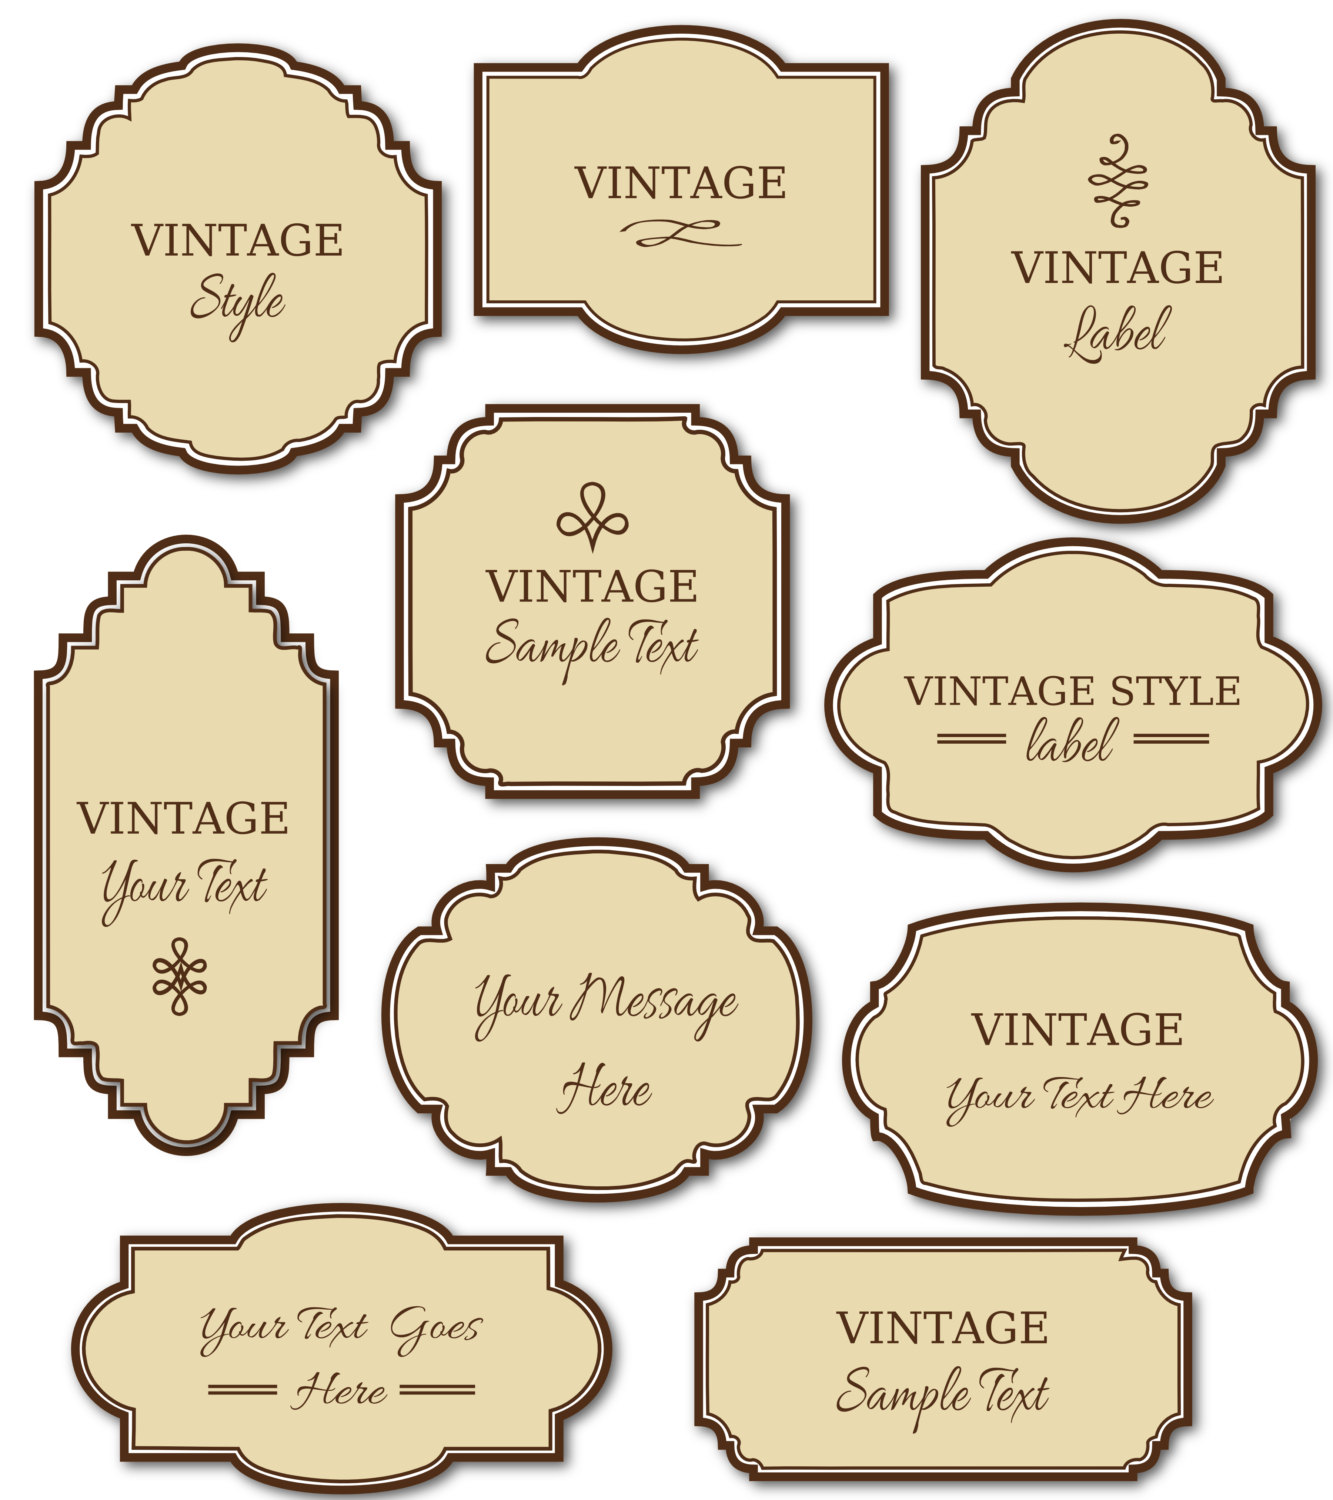 Vintage Wedding Gift Tag Templates Free : Vintage Labels Clipart - Clipart Kid